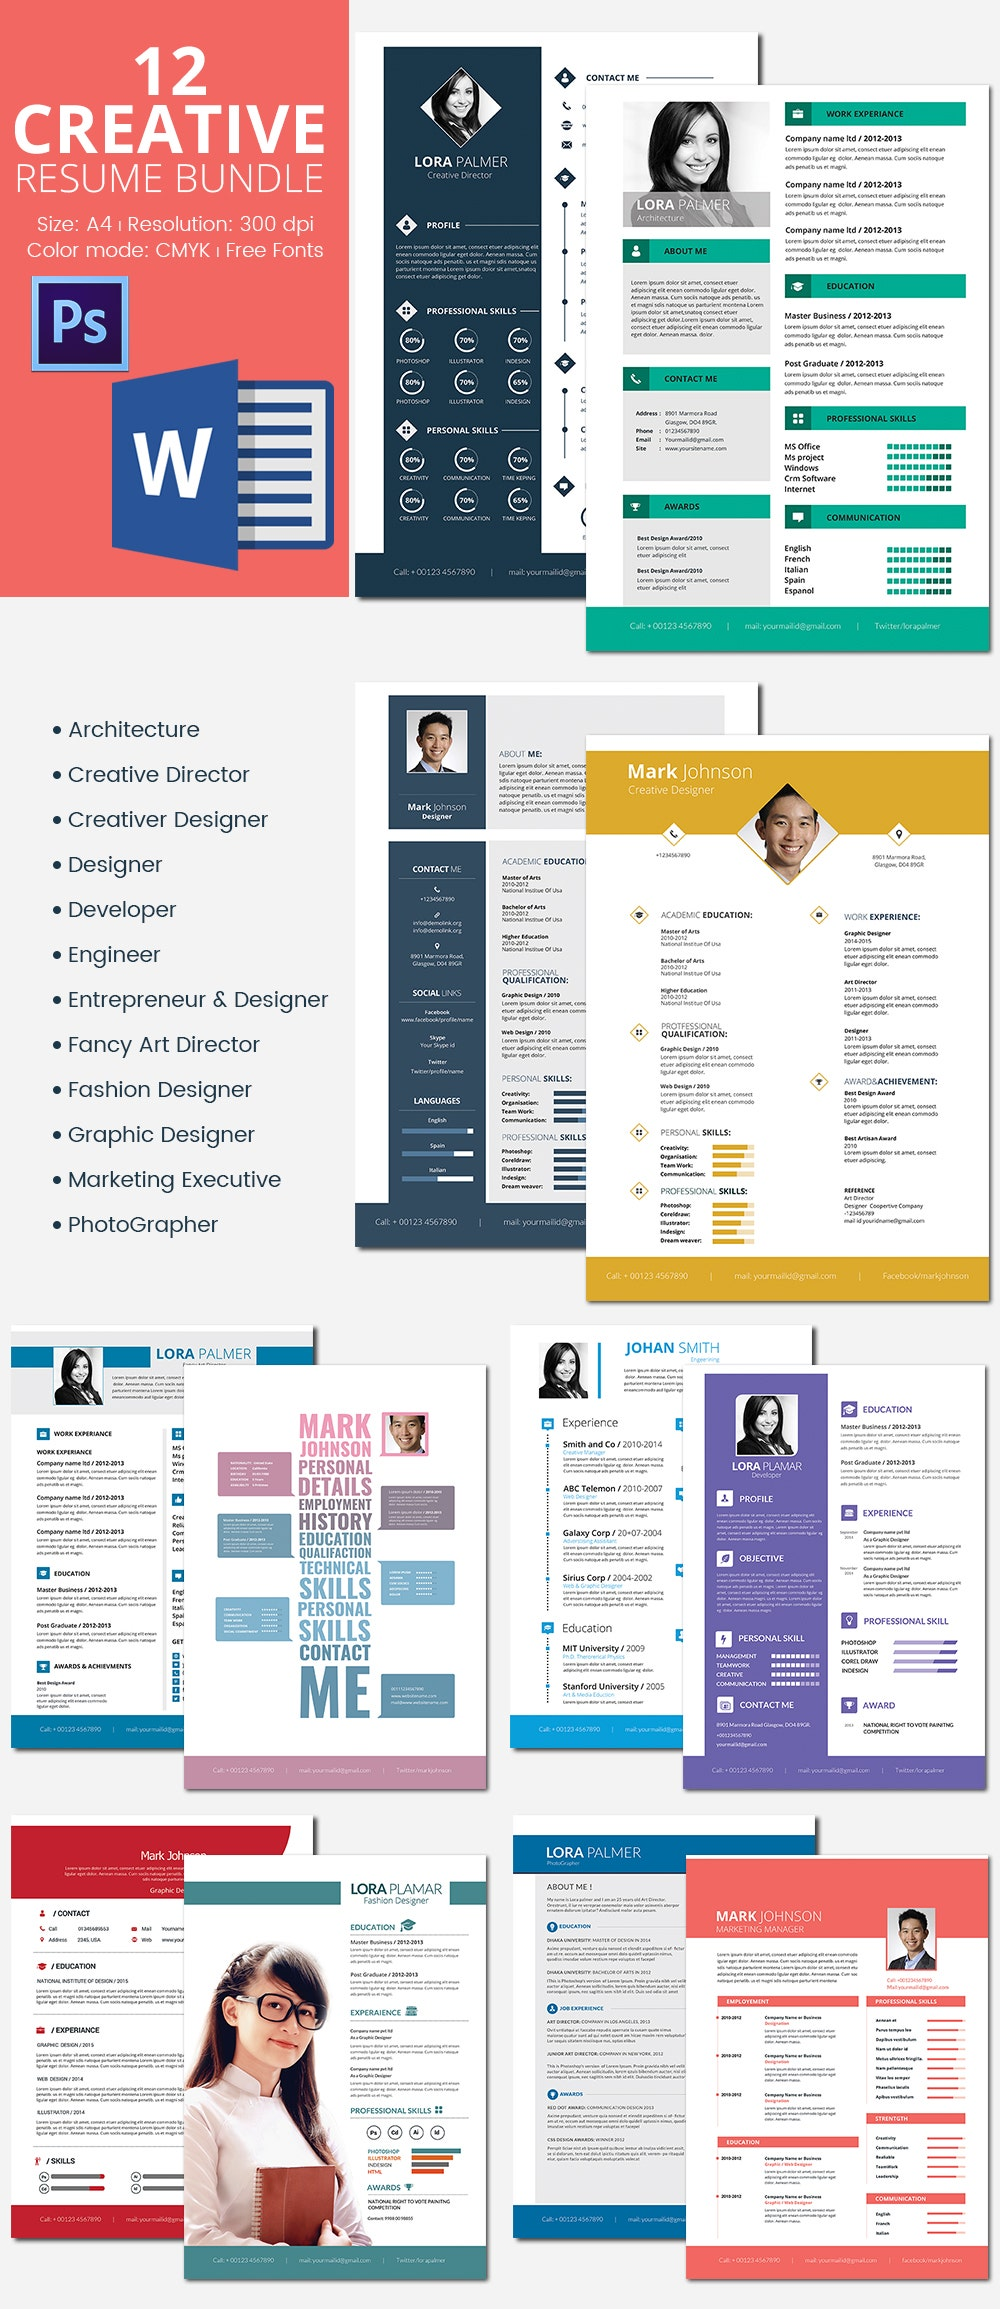 Project Manager Resume Template - 10+ Free Word, Excel, PDF Format ...